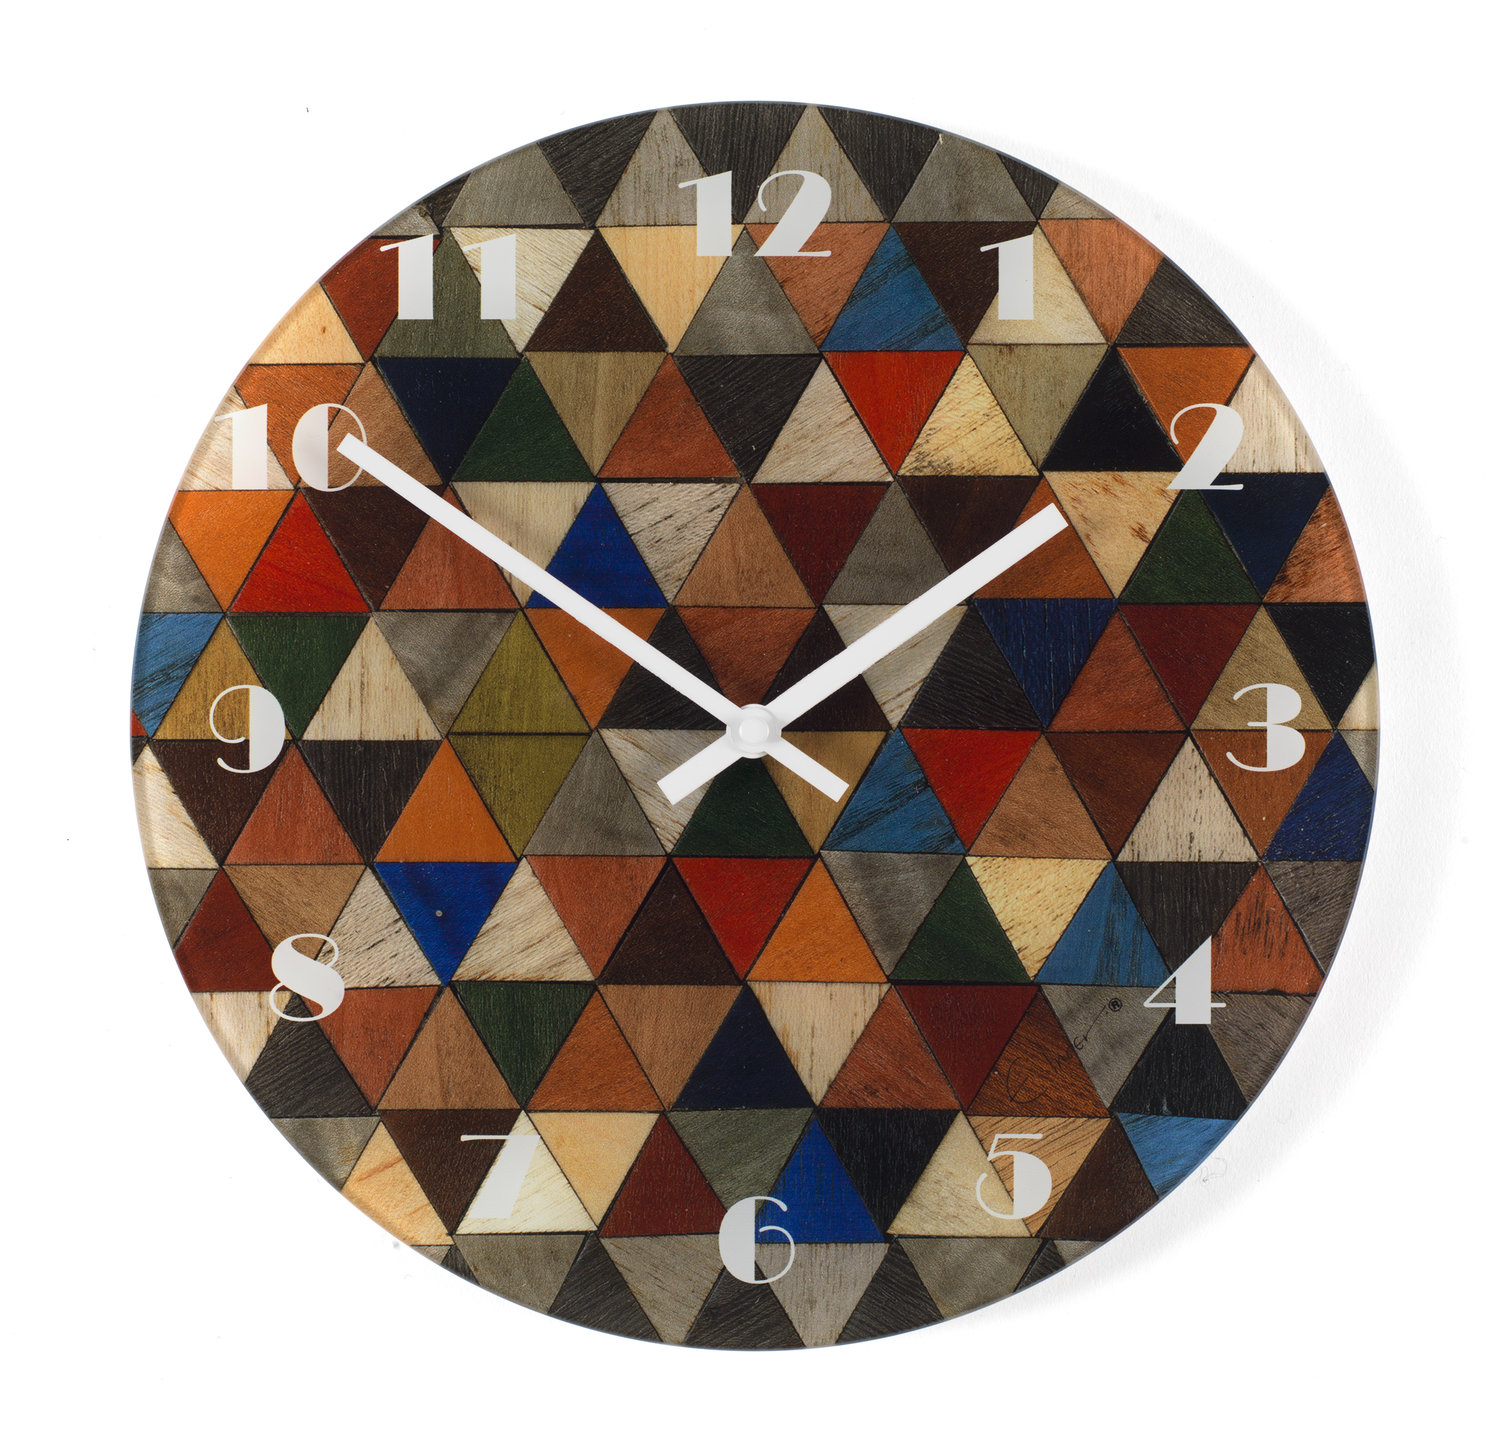 30 wall clock open face large round wall clock toughened recycled glass harlequin range 30 cms or 12 inch diameter